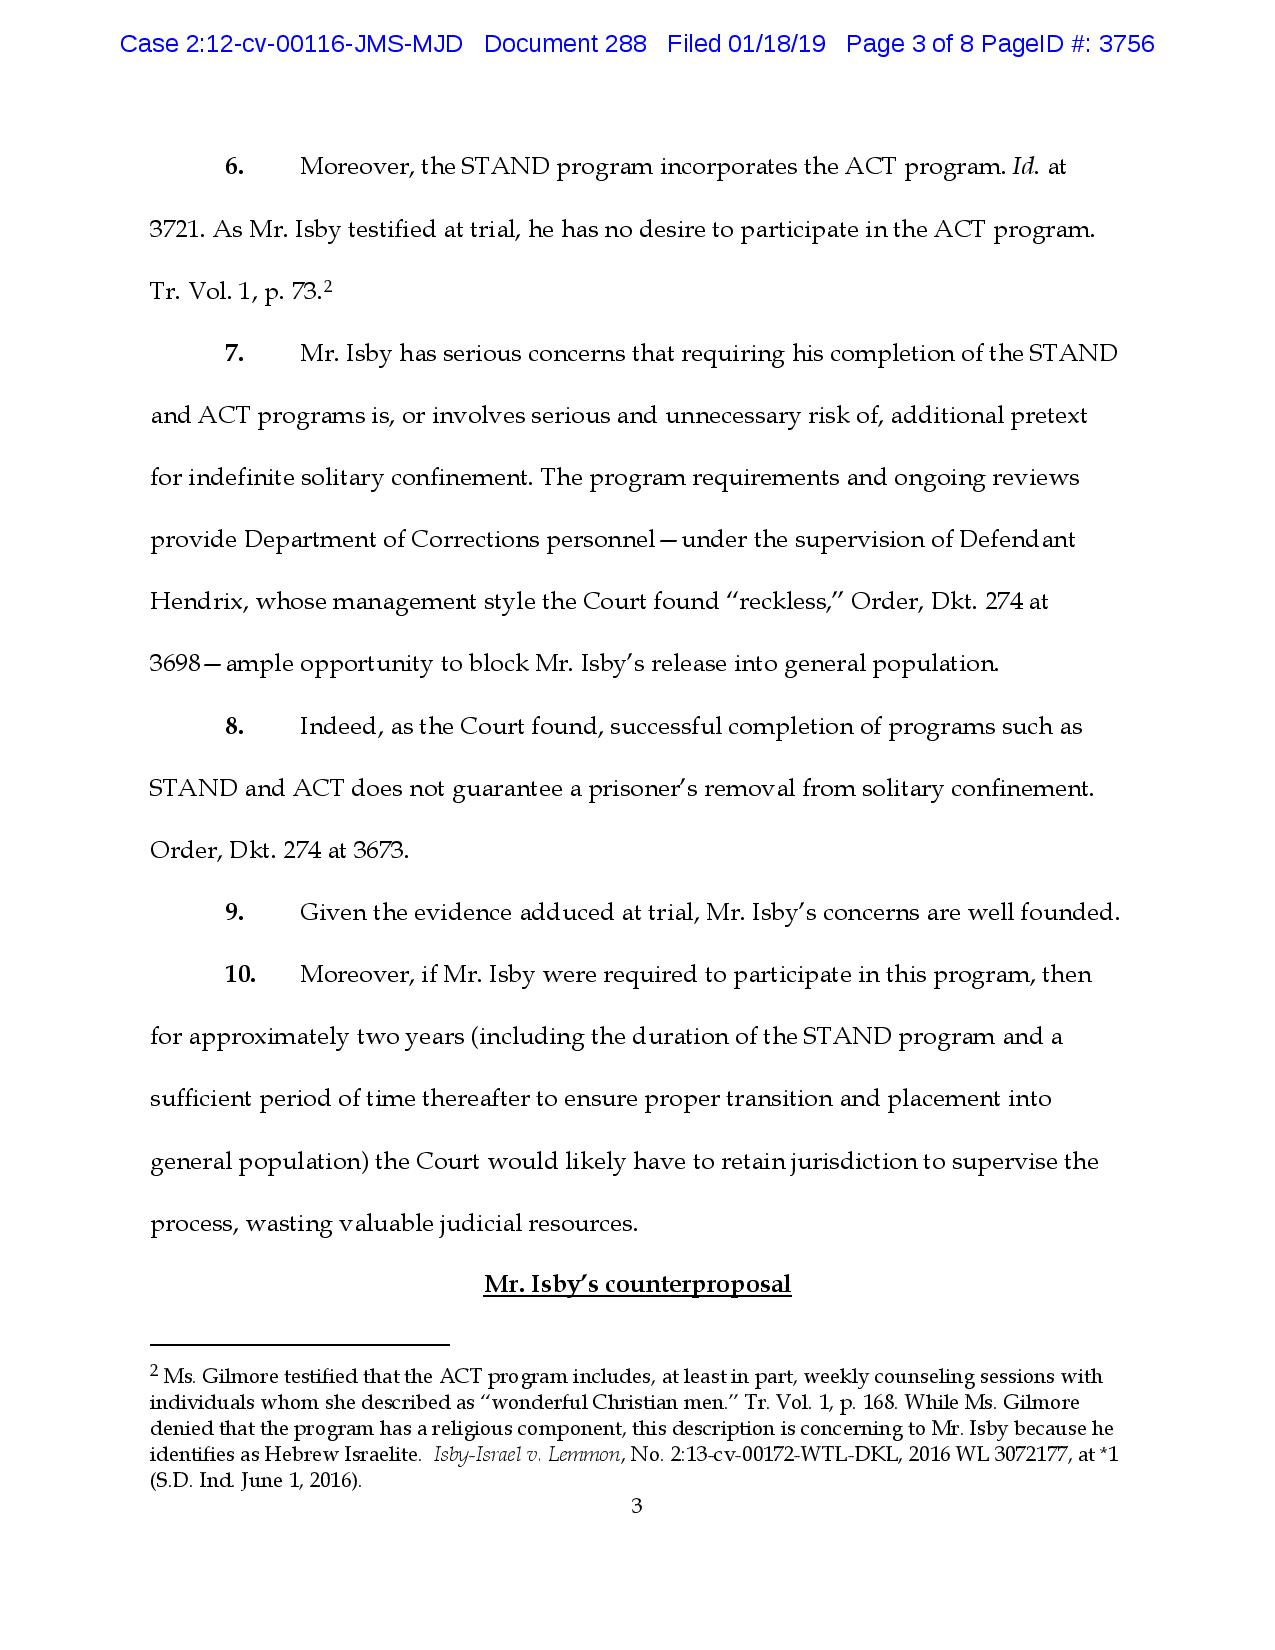 2019-01-18 (Dkt. 288) Isby - Resp. to Hendrix s Proposed Plan (with proposed order)-page-003.jpg